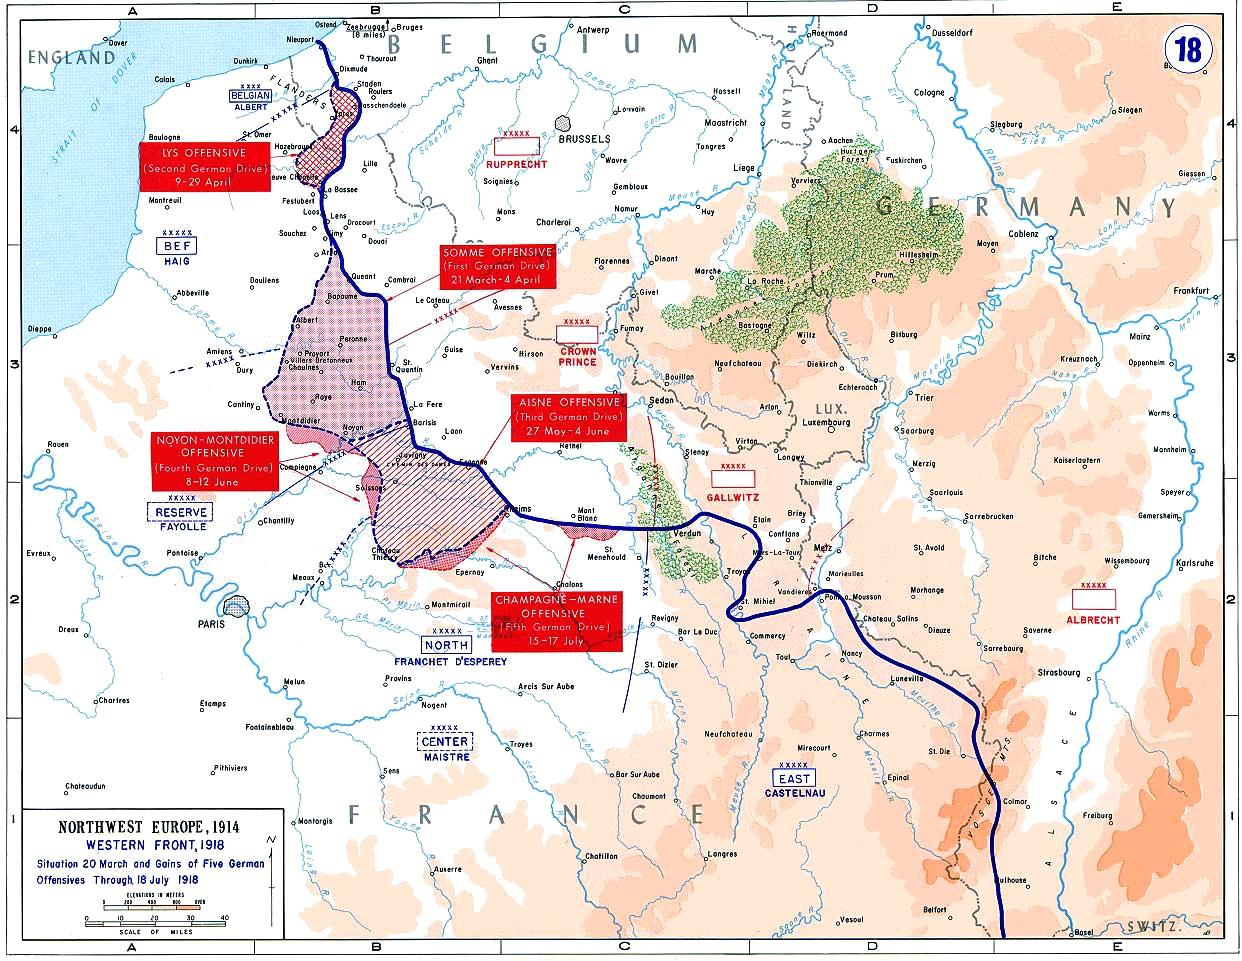 The German Spring Offensive was made possible in 1918 due to the collapse of Russia, but German high command knew they had precious little time to make their weight in numbers felt, so a breathtaking offensive was launching, sweeping up everything that the allies held dear for numerous weeks, until it finally ran out of steam and resources, much to the relief of the allies.